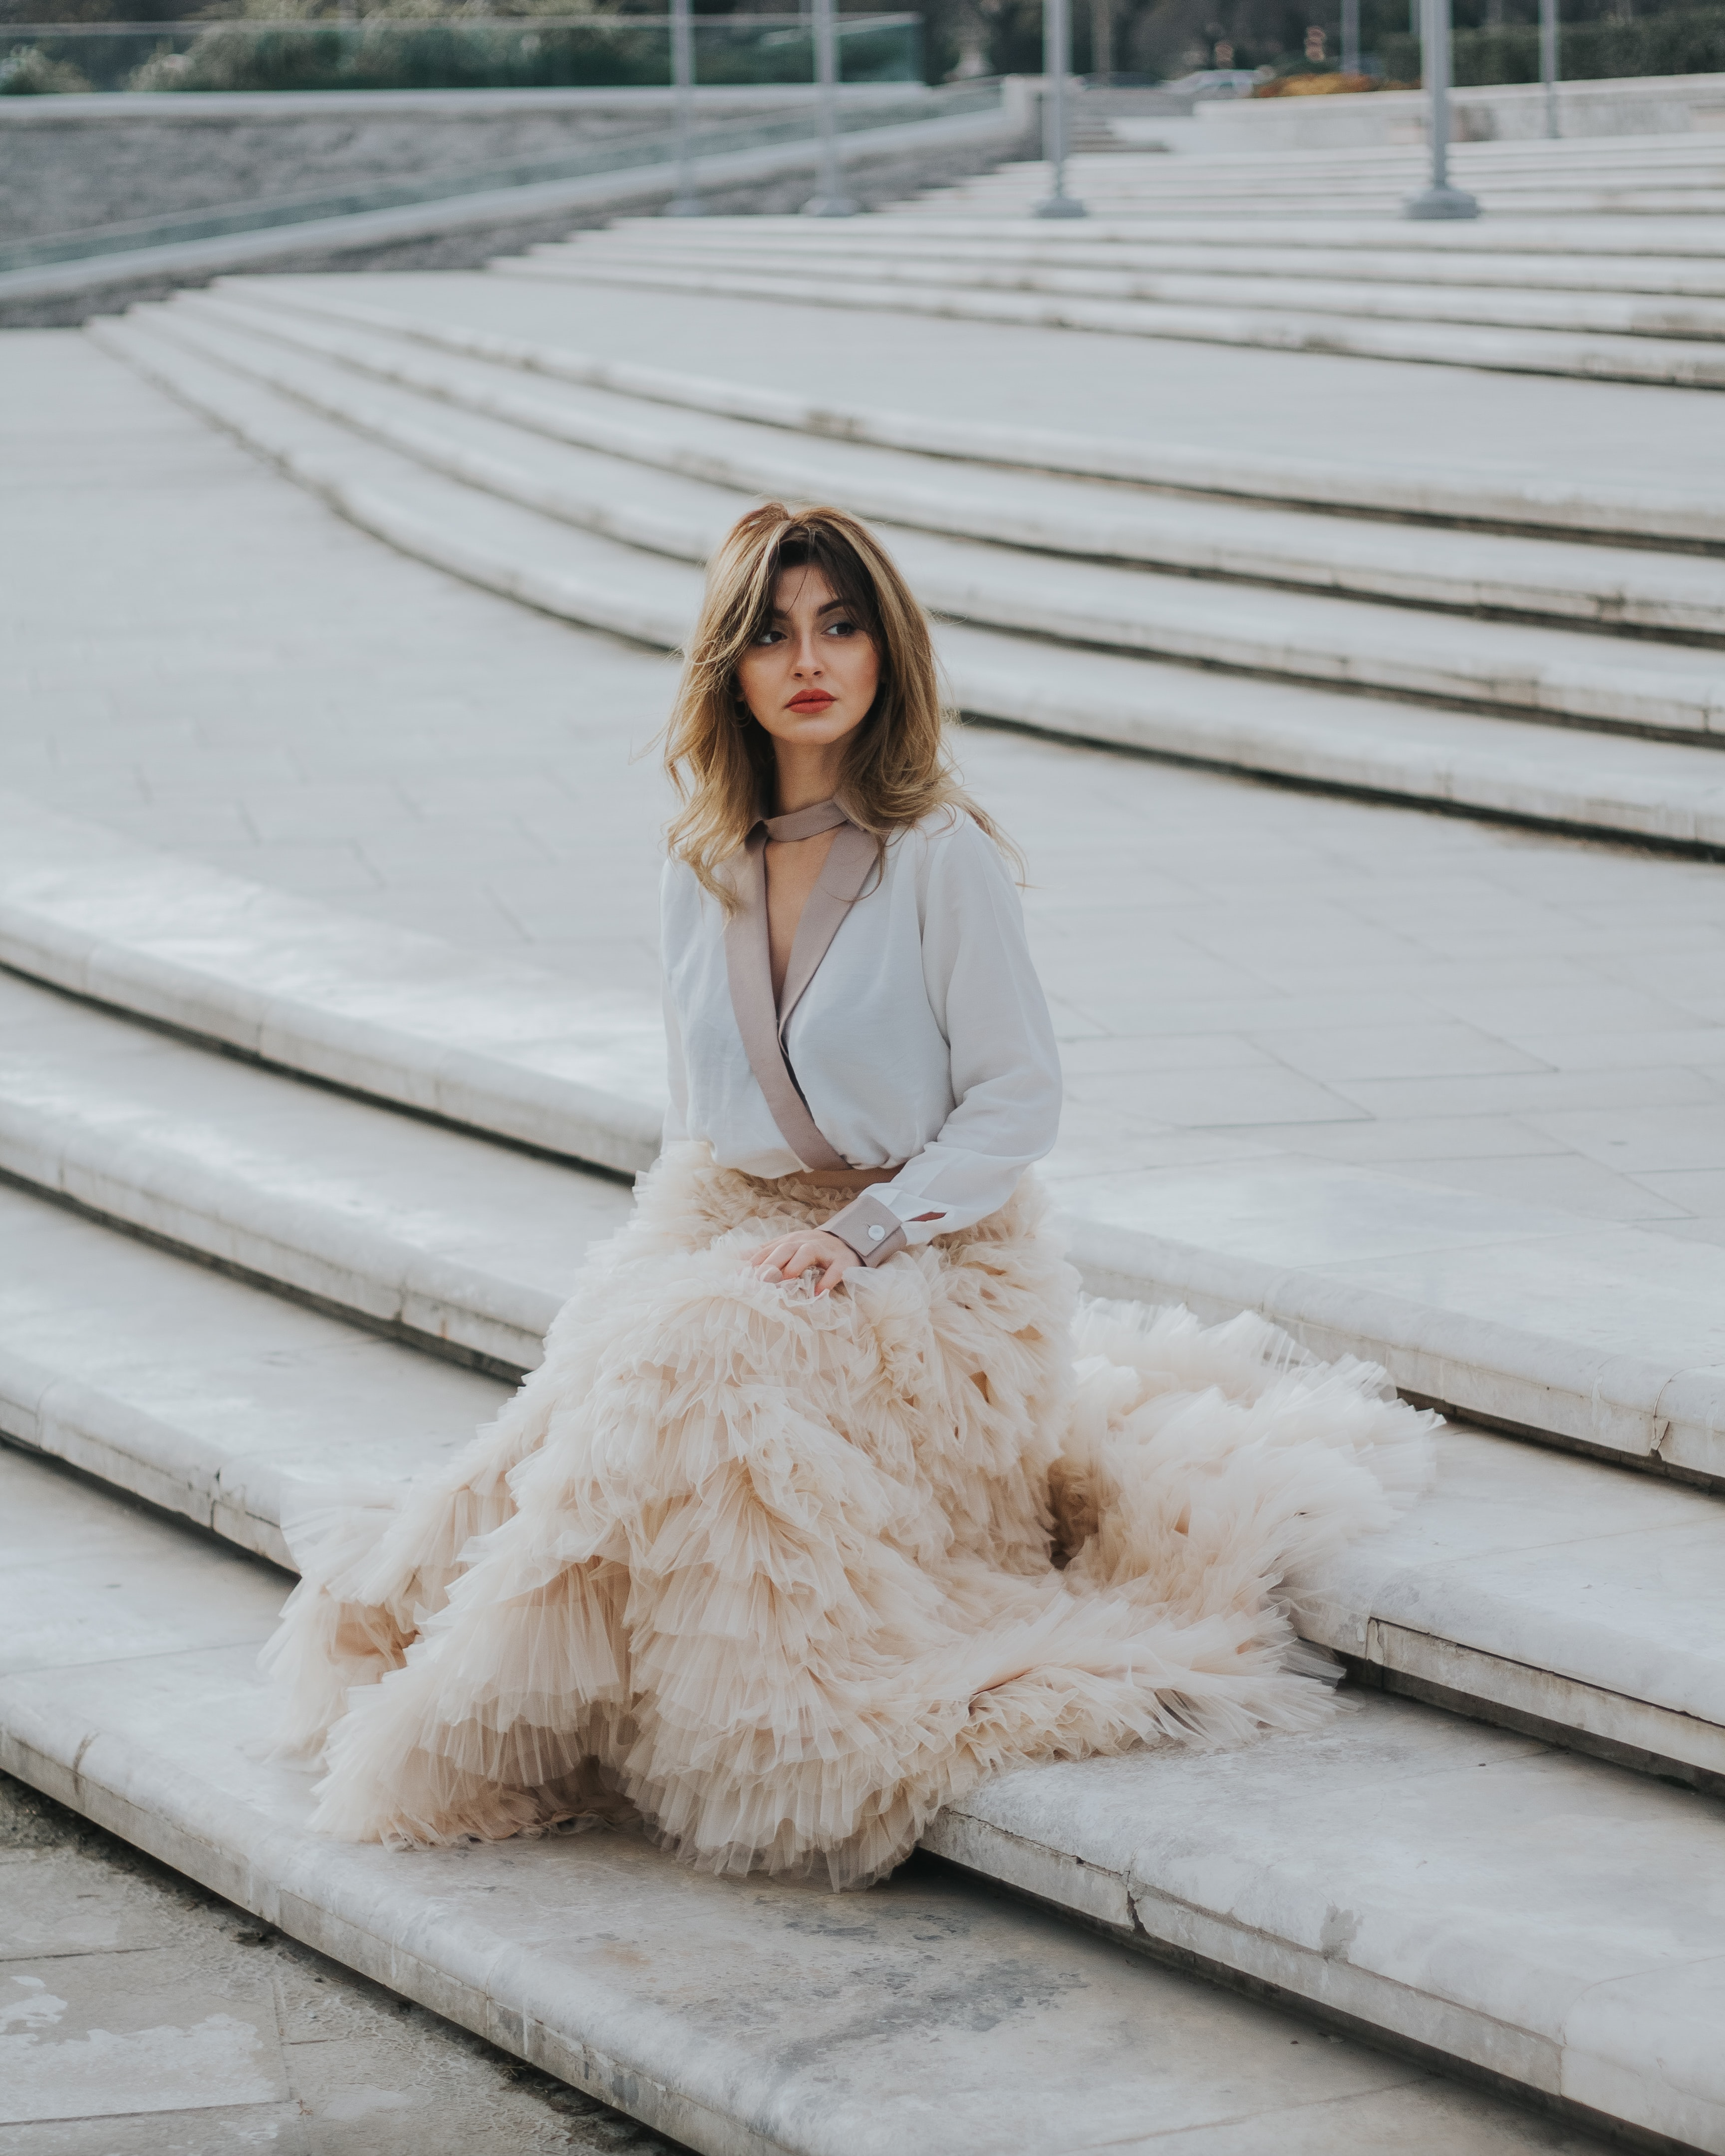 brown haired woman in white dress sitting on gray concrete stair during day time